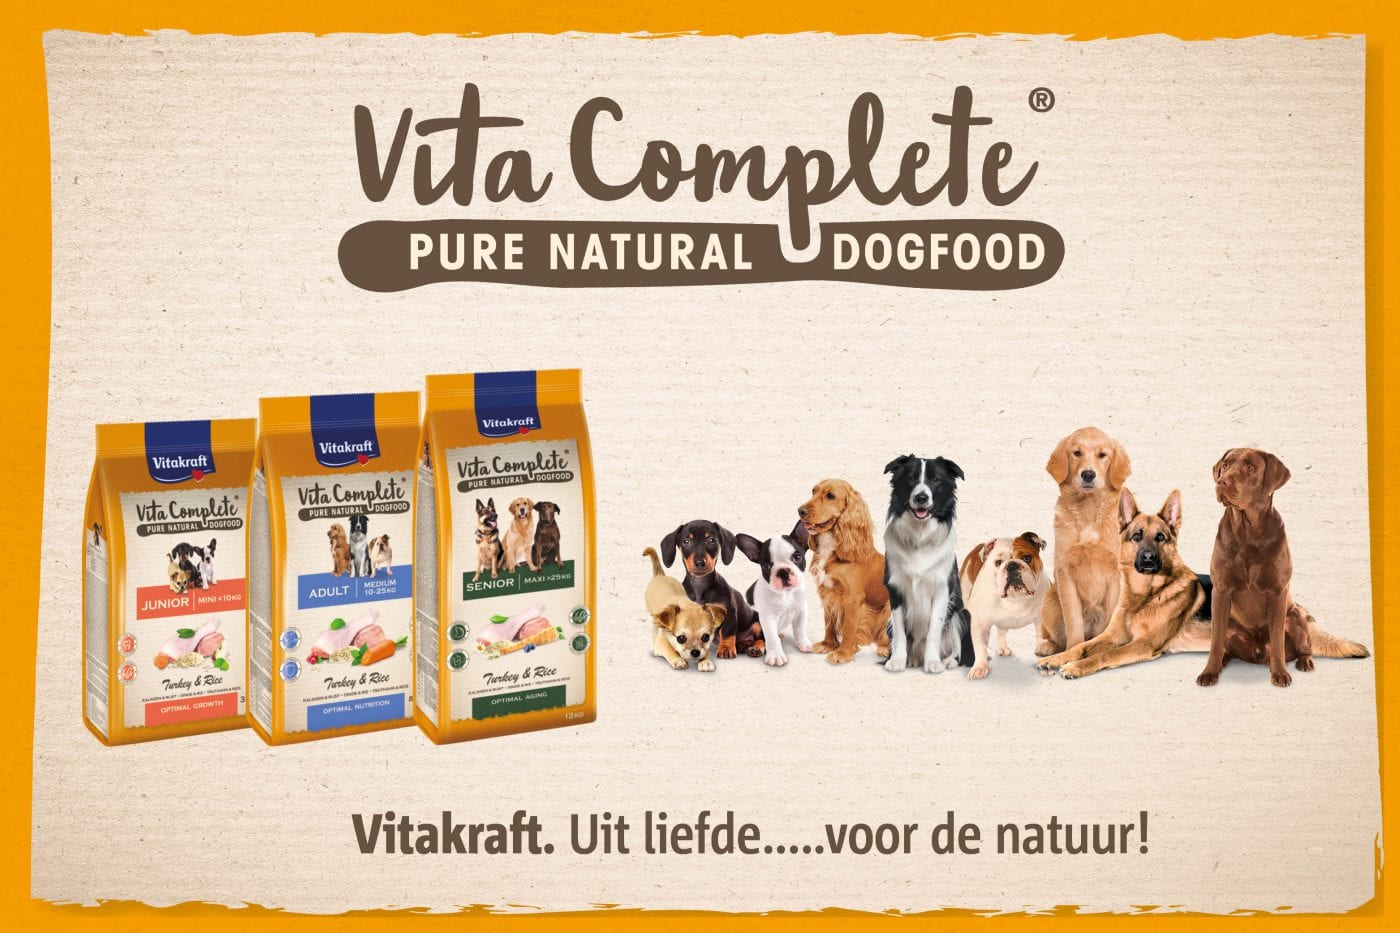 Vita Complete® Pure Natural Dogfood